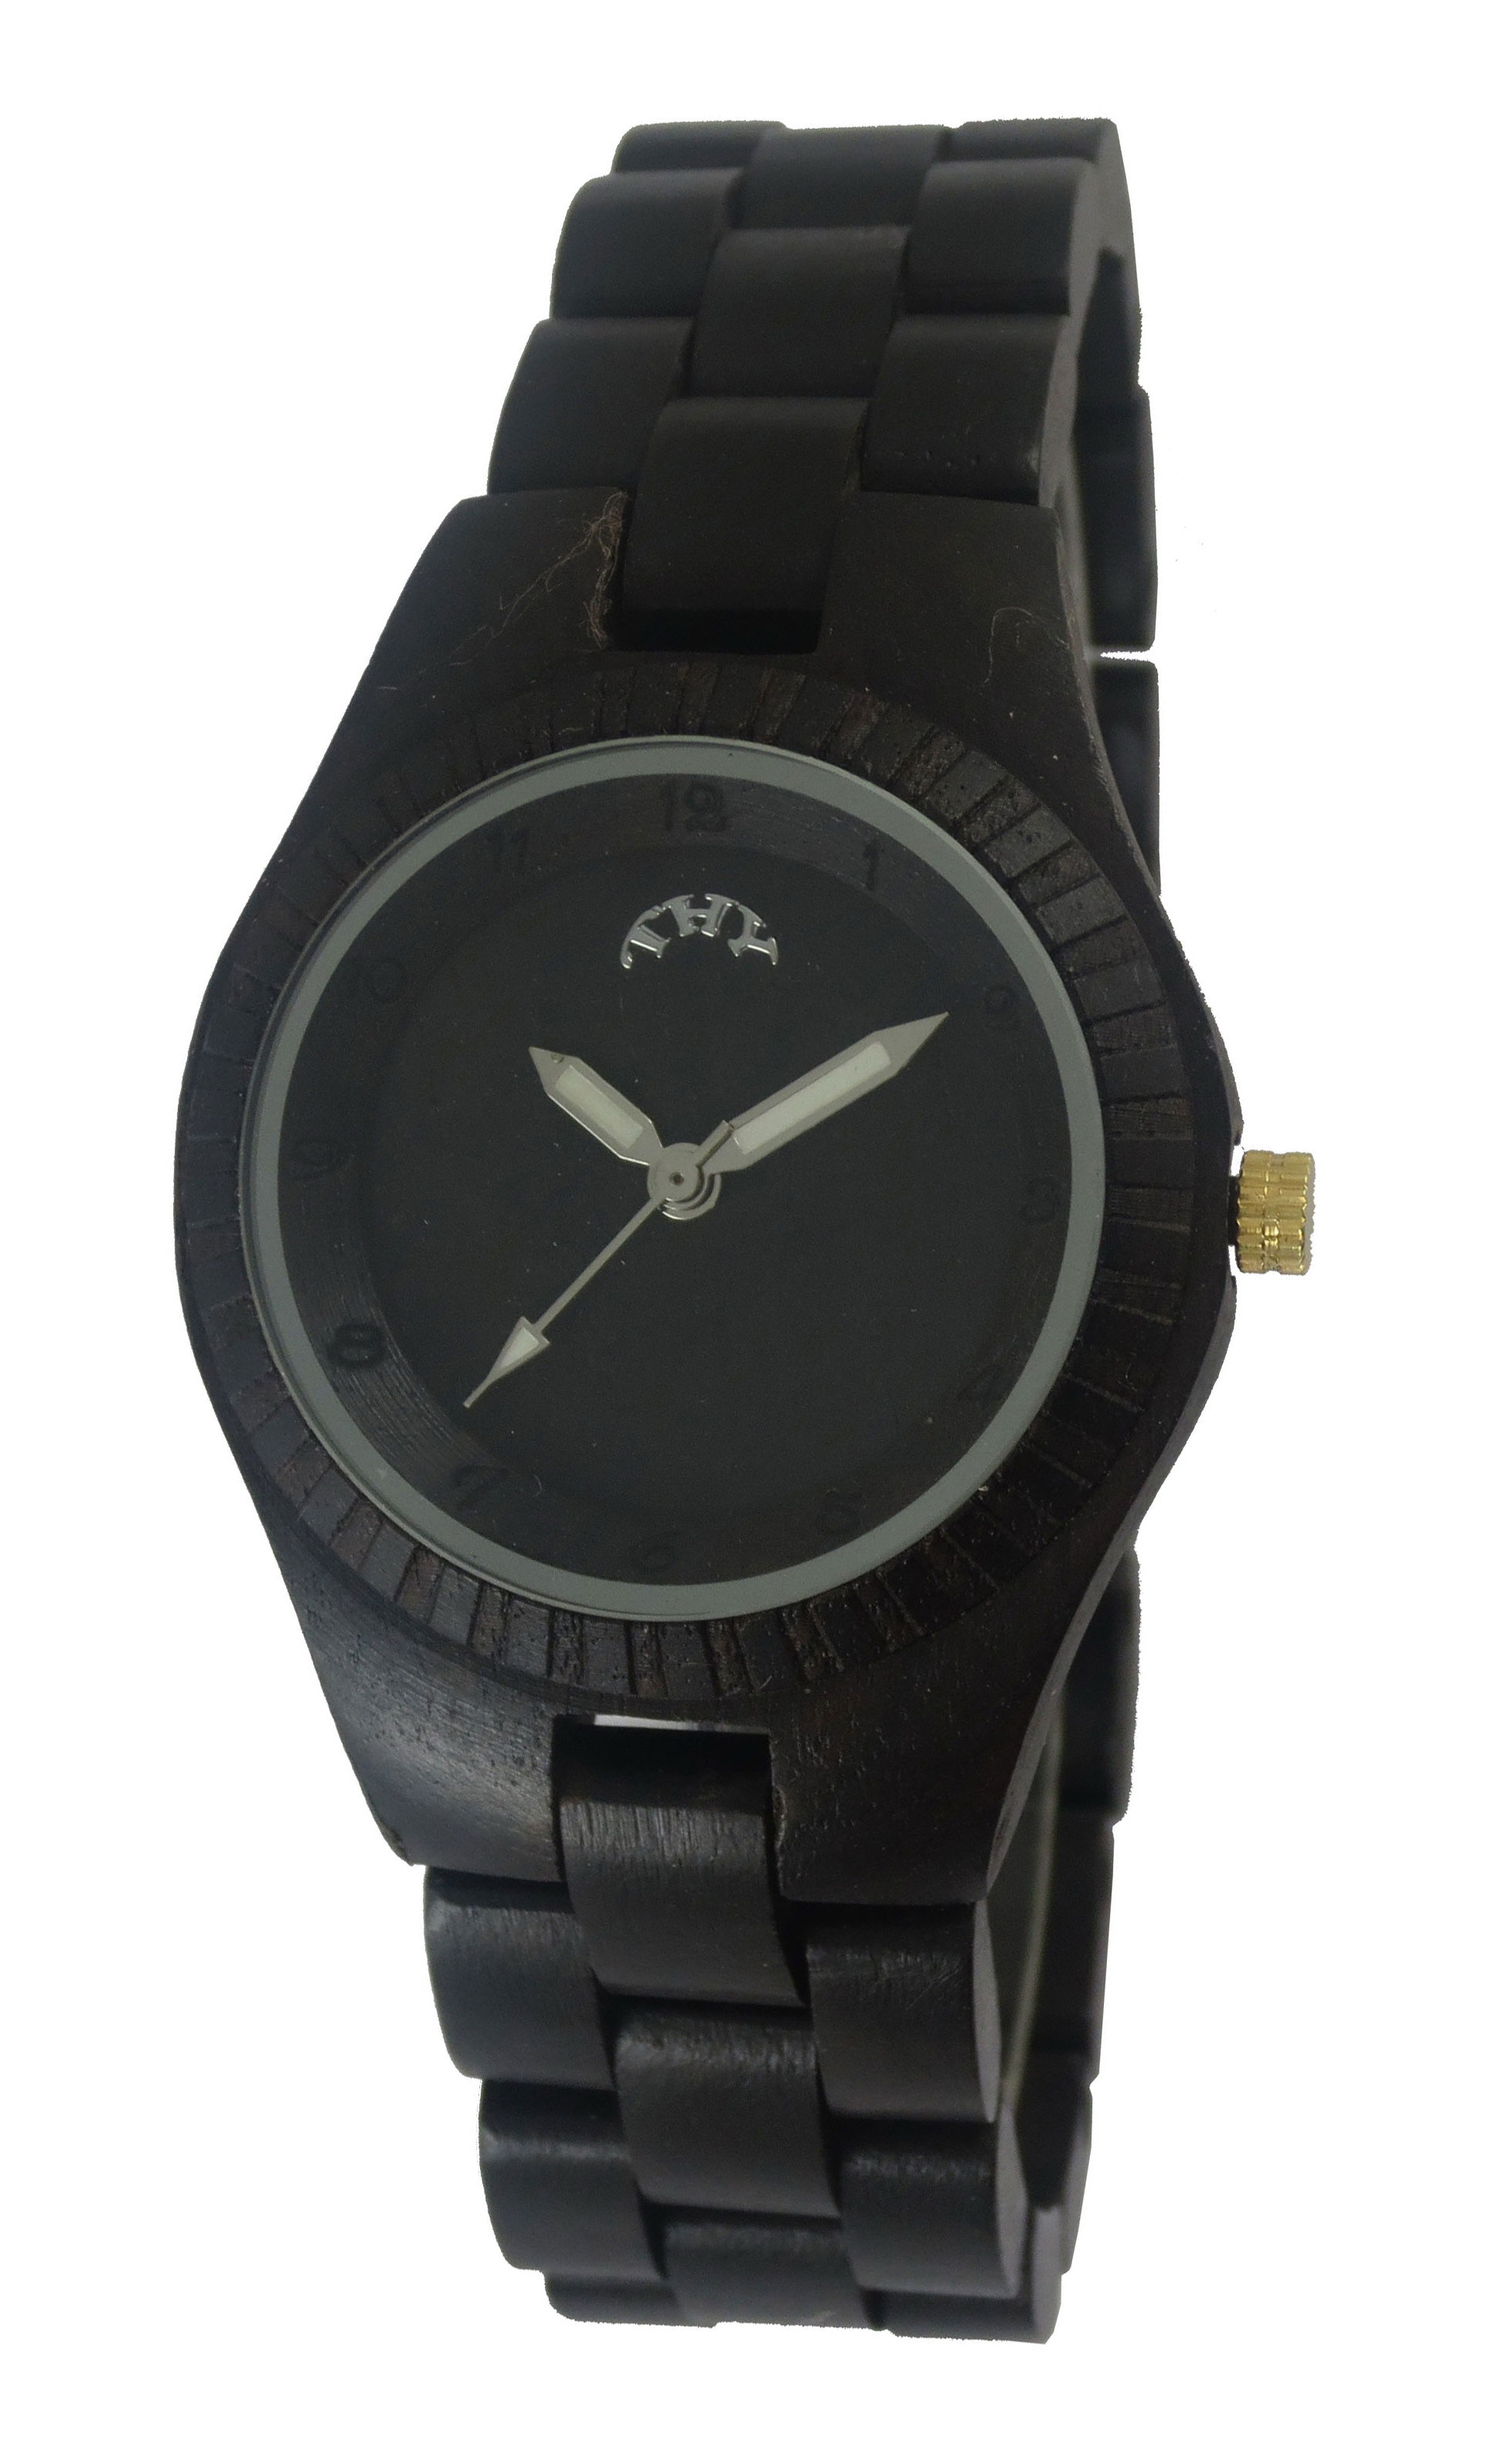 WoMens Black Round Black Dial Wooden Watches with 30 Mm Size W00014